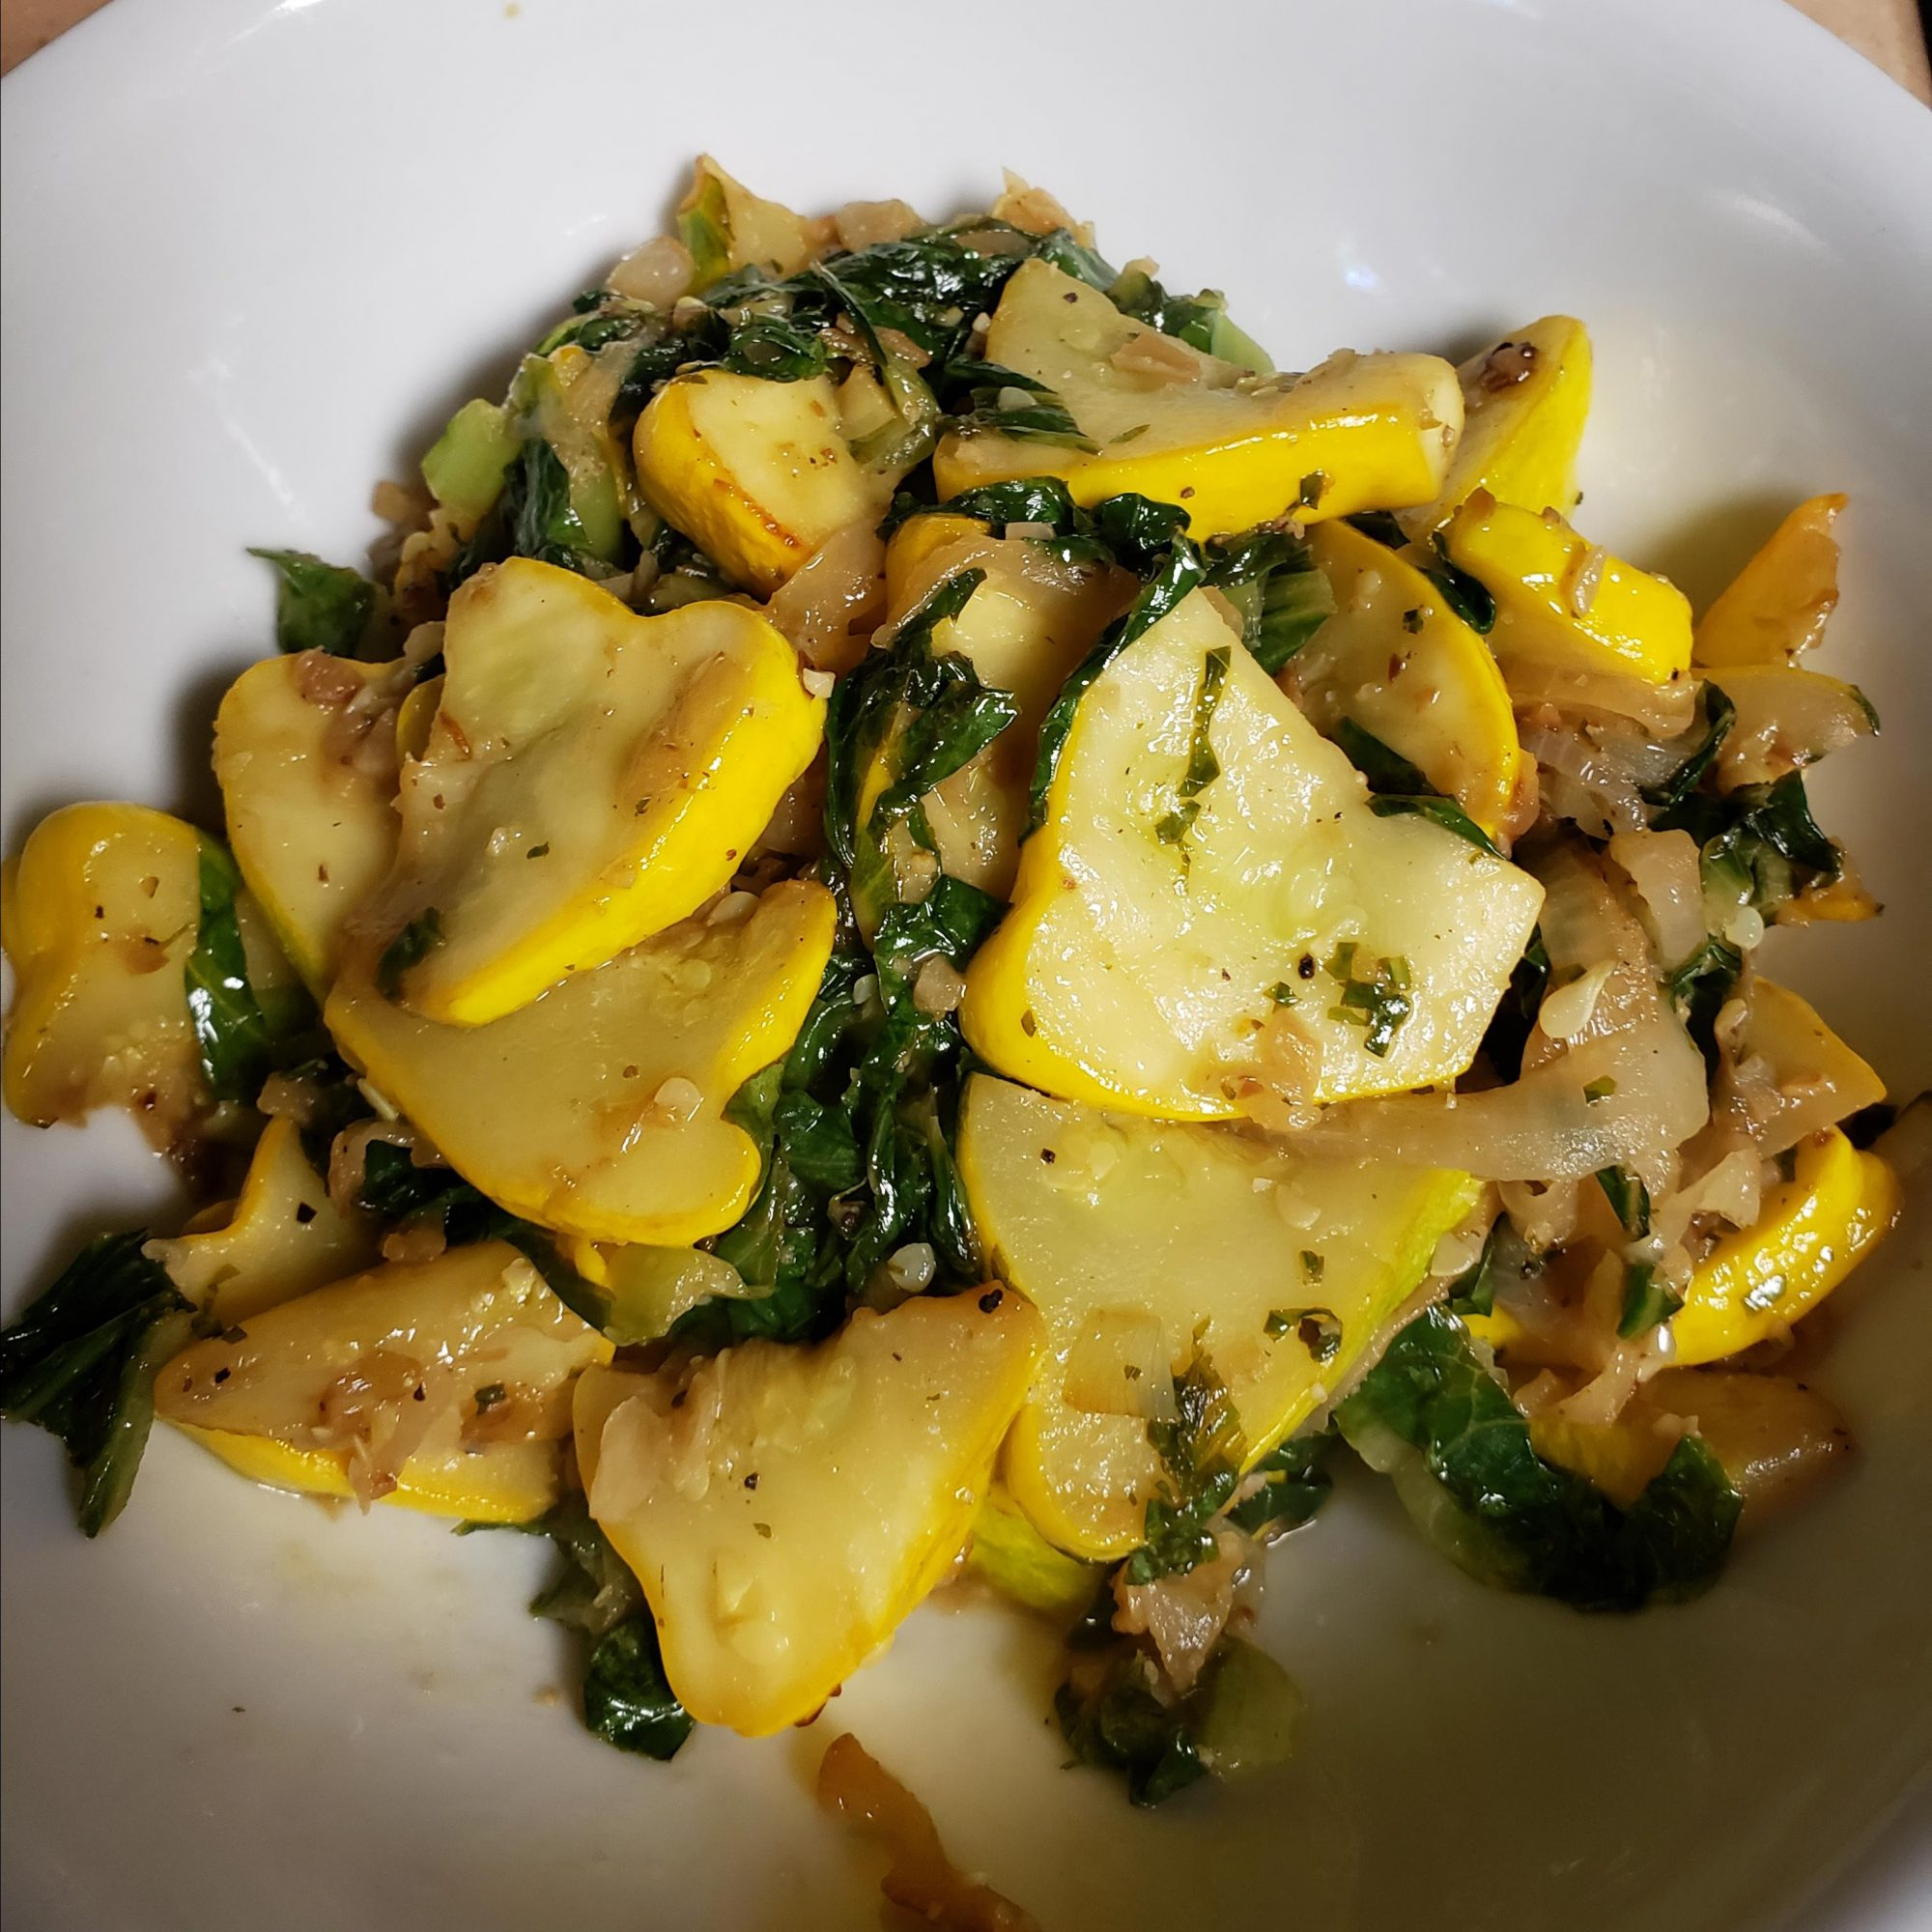 Sauteed Patty Pan Squash in a white bowl